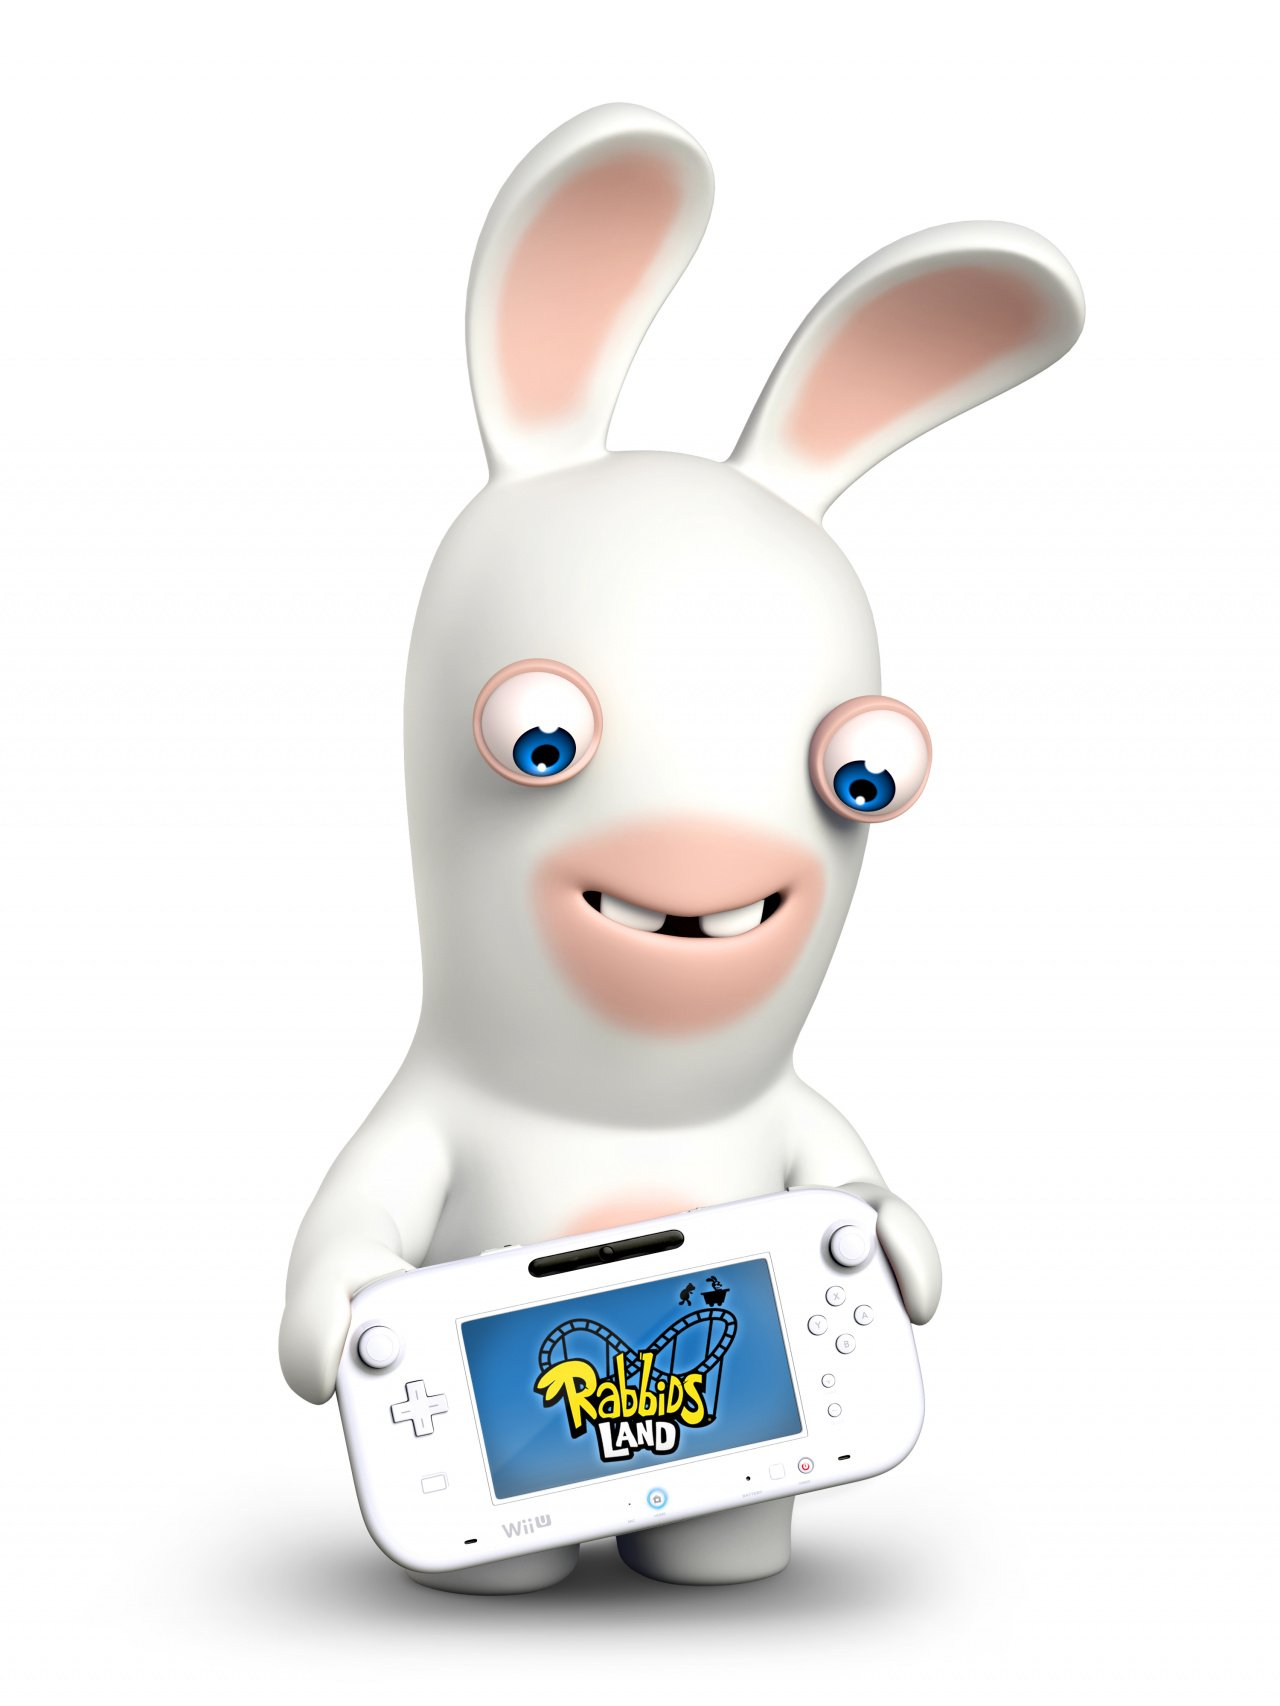 E3 2012 Rabbids Land Is A Wii U Party Board Game